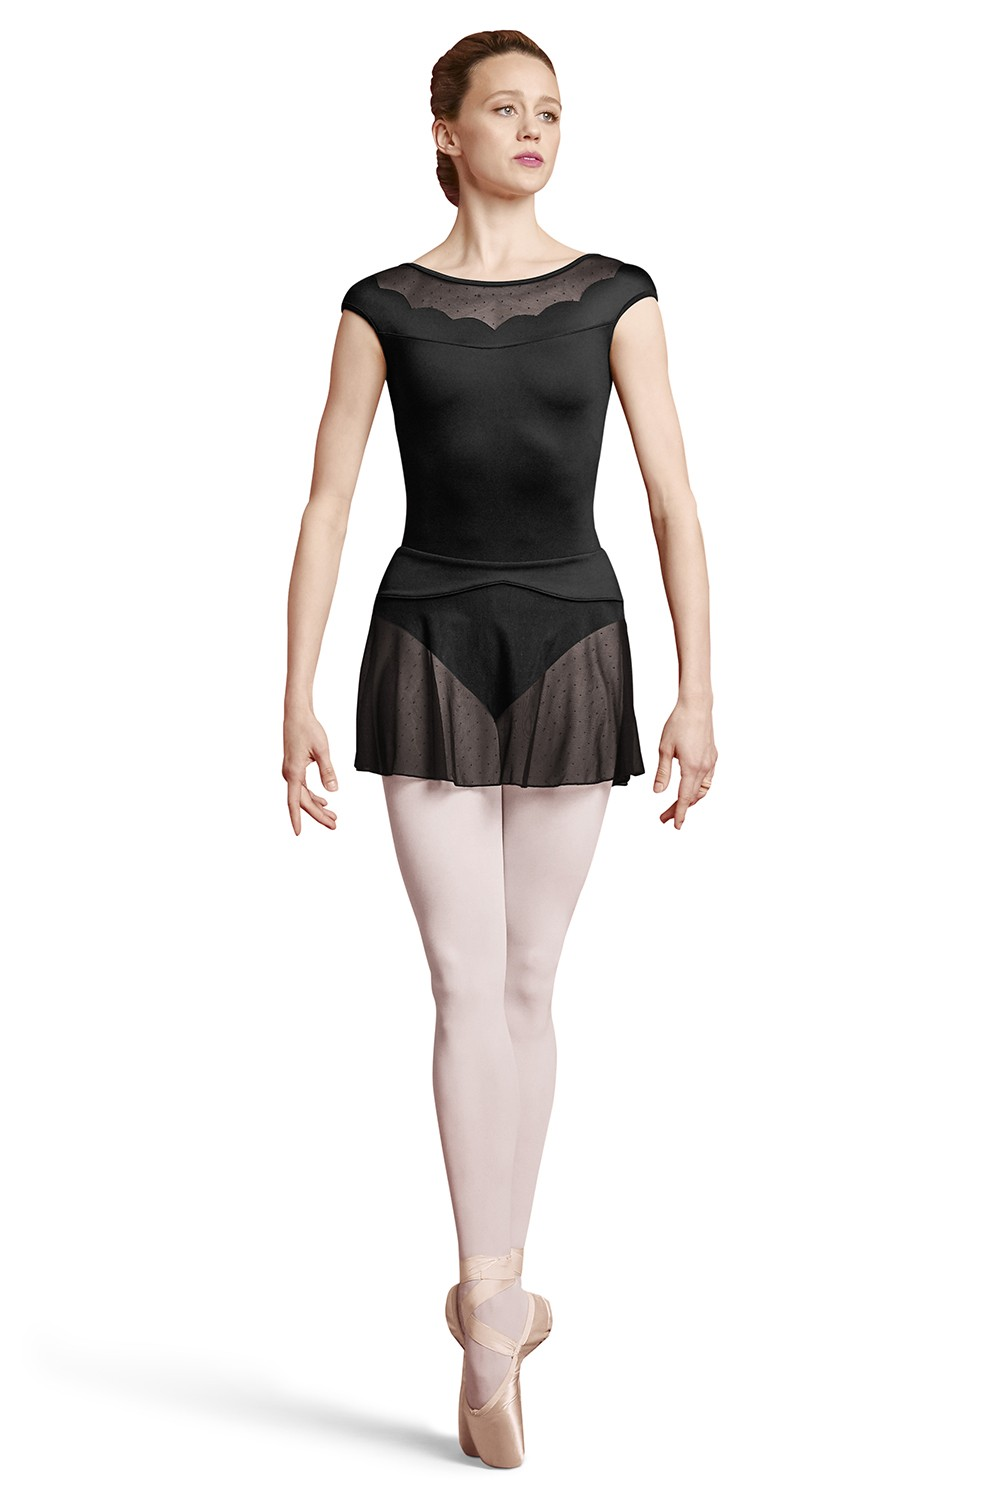 Groa Women's Dance Leotards